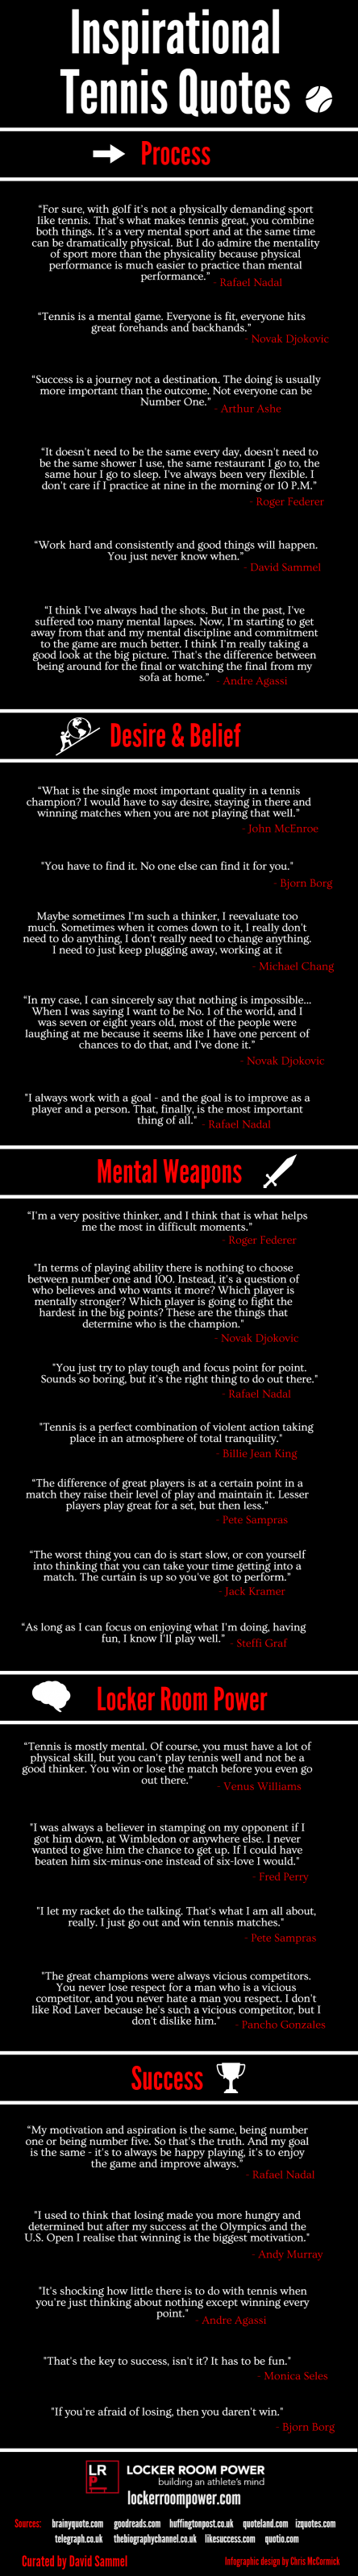 Infographic of inspirational tennis quotes from top players including Rafael Nadal, Roger Federer, Andy Murray and Novak Djokovic.